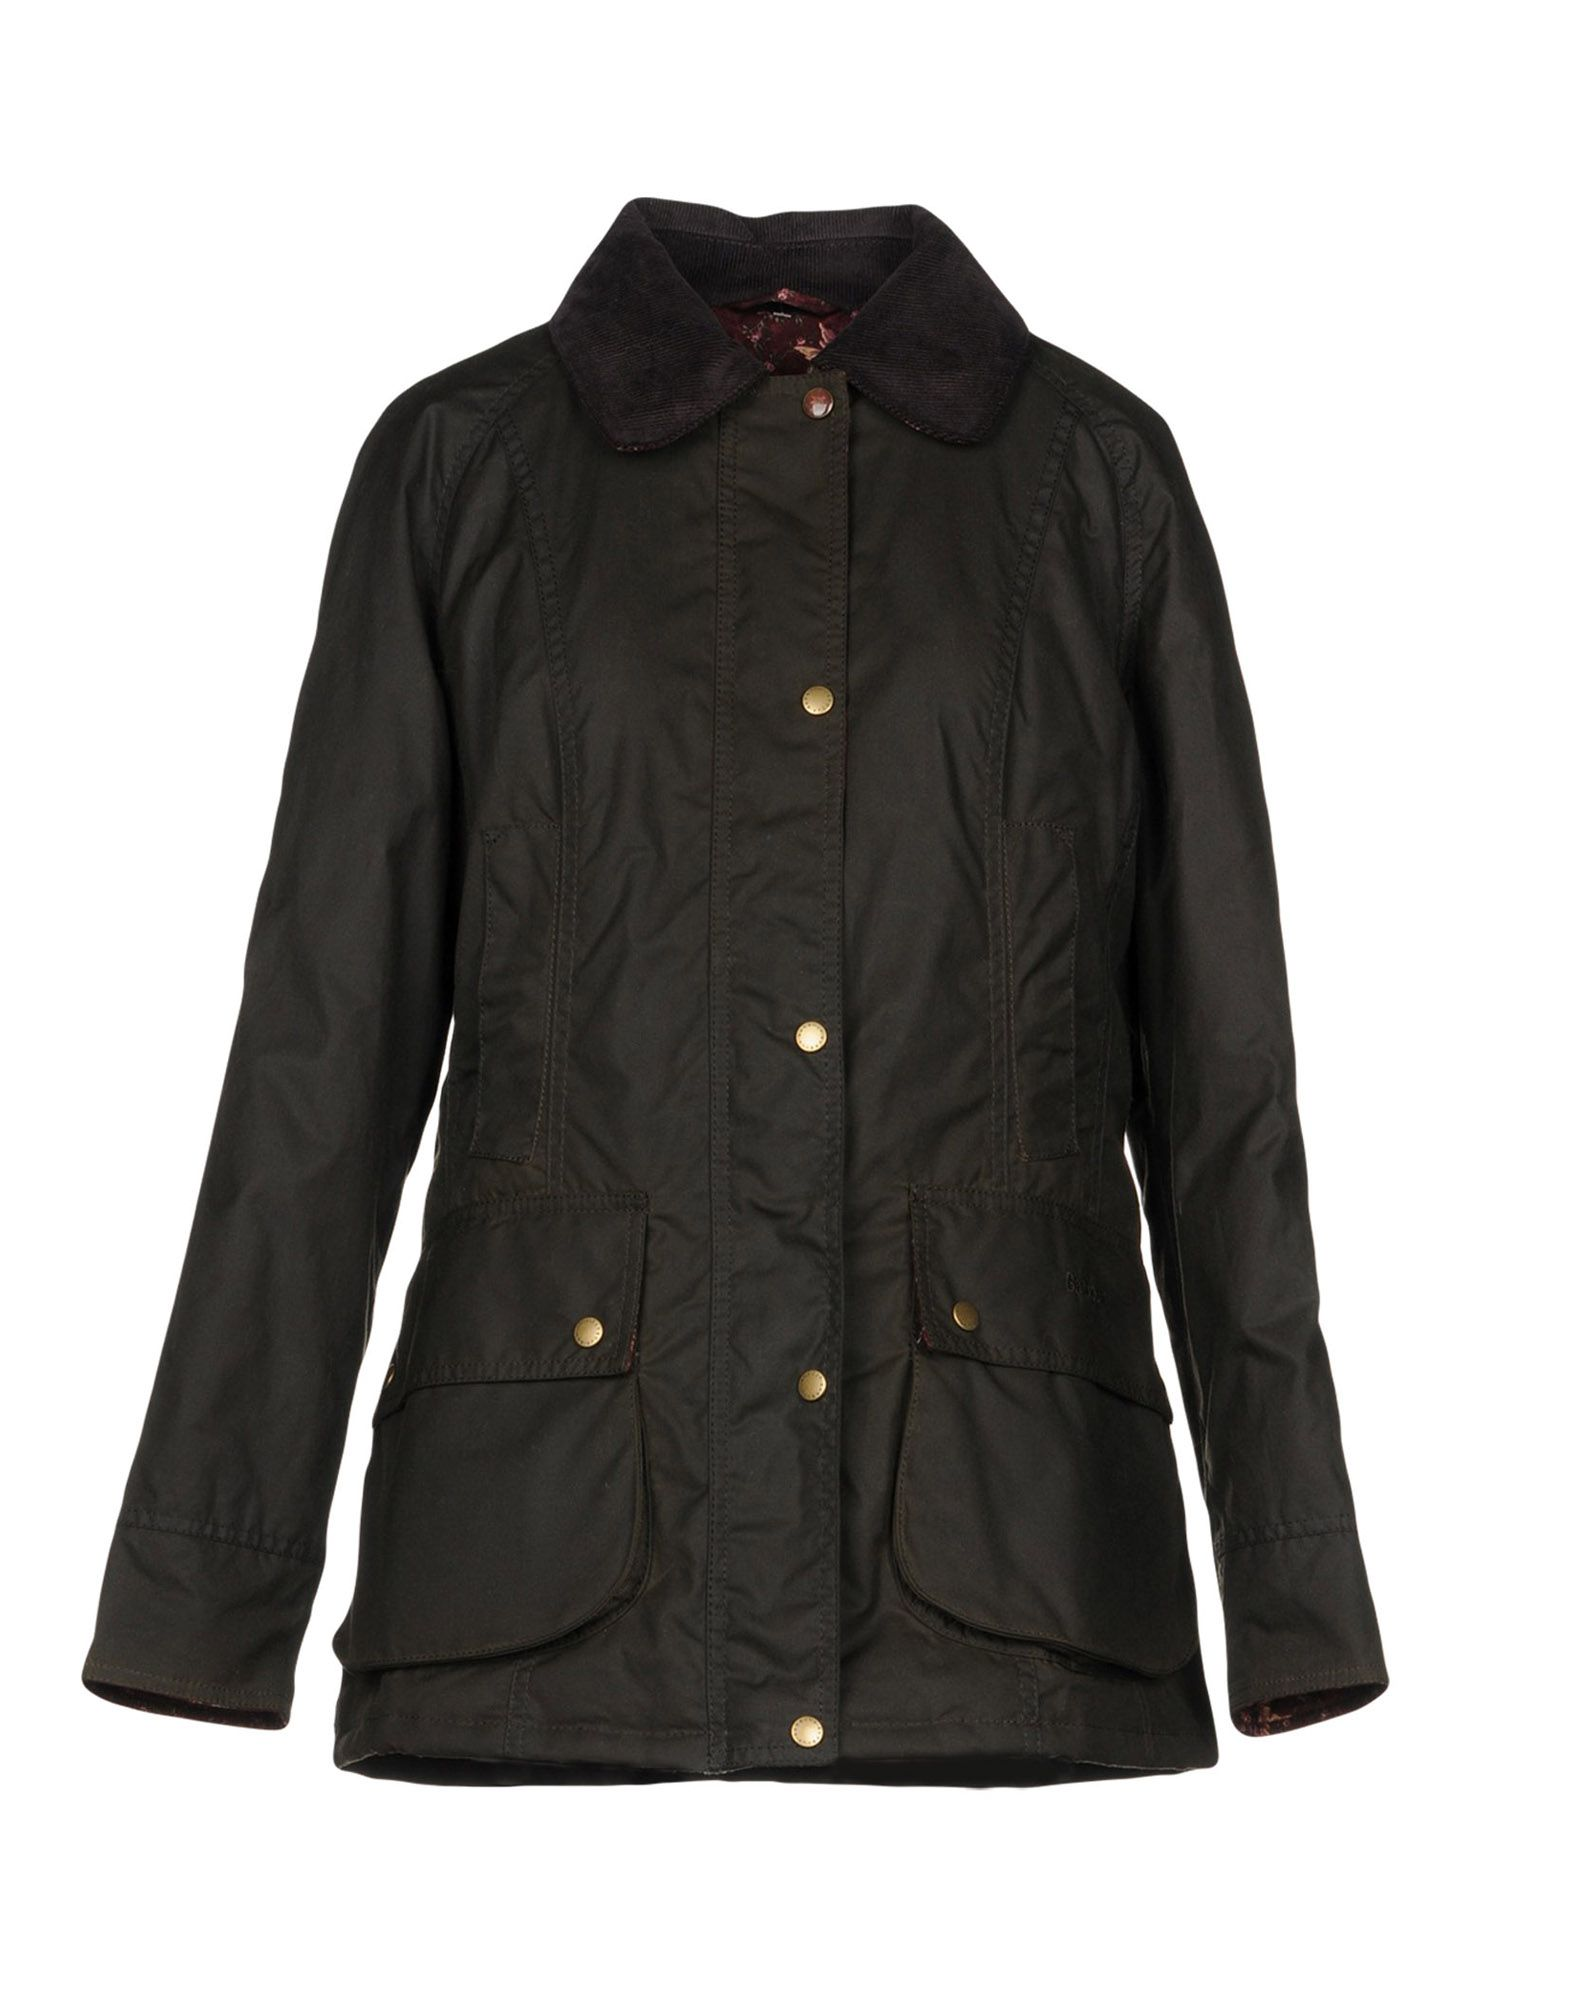 Giubbotto Barbour Donna - Acquista online su MtD693qer